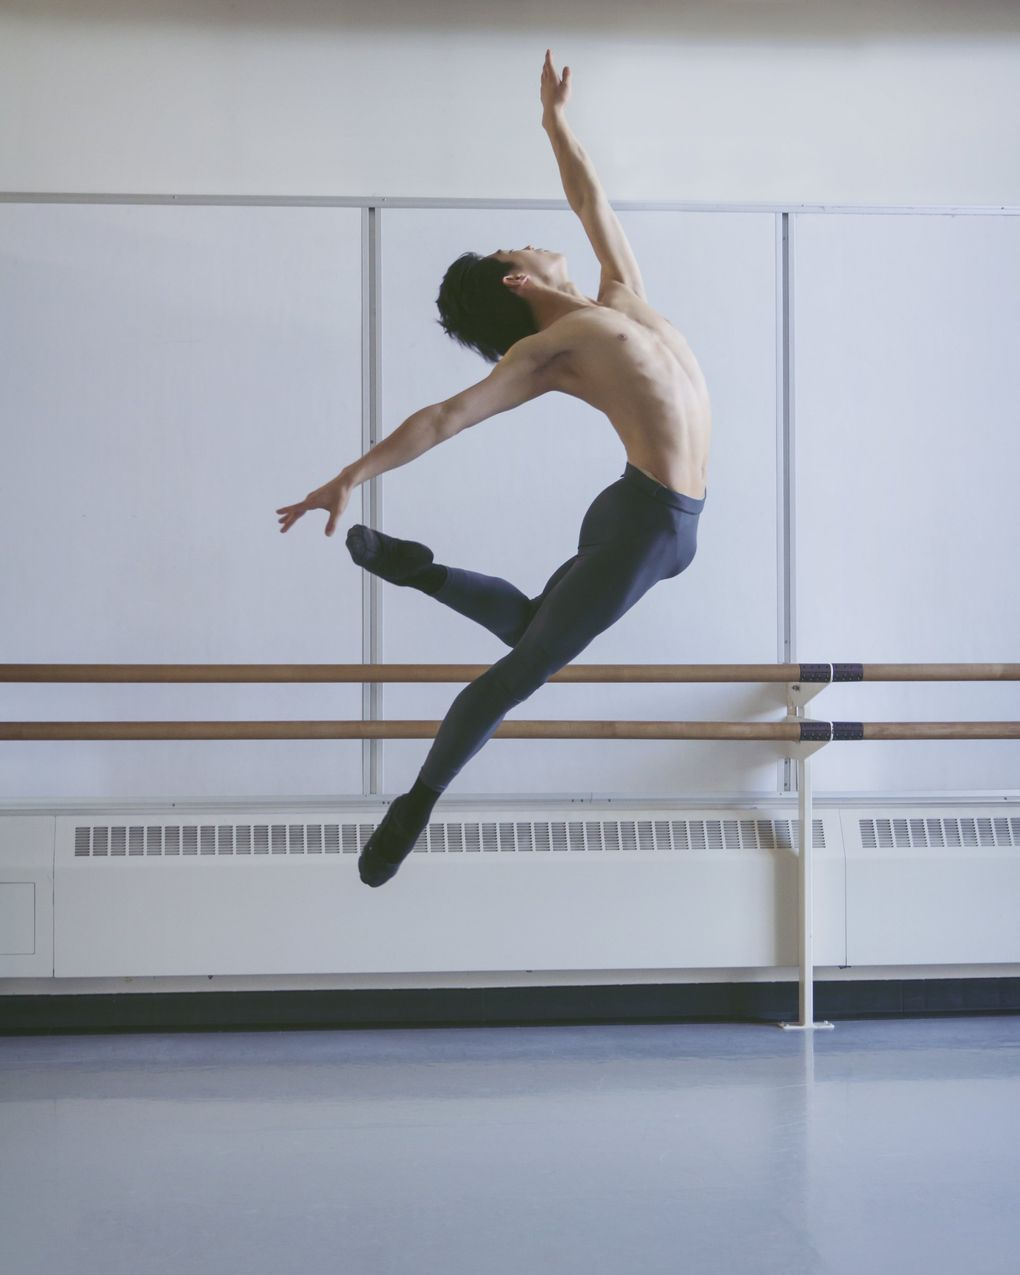 """Pacific Northwest Ballet corps de ballet dancer Kuu Sakuragi says dancing allows him to let down his guard. He cites a favorite quote from dancer Mikhail Baryshnikov: """"Dance for me for one minute, and I'll tell you who you are."""" (Lindsay Thomas, 2016)"""